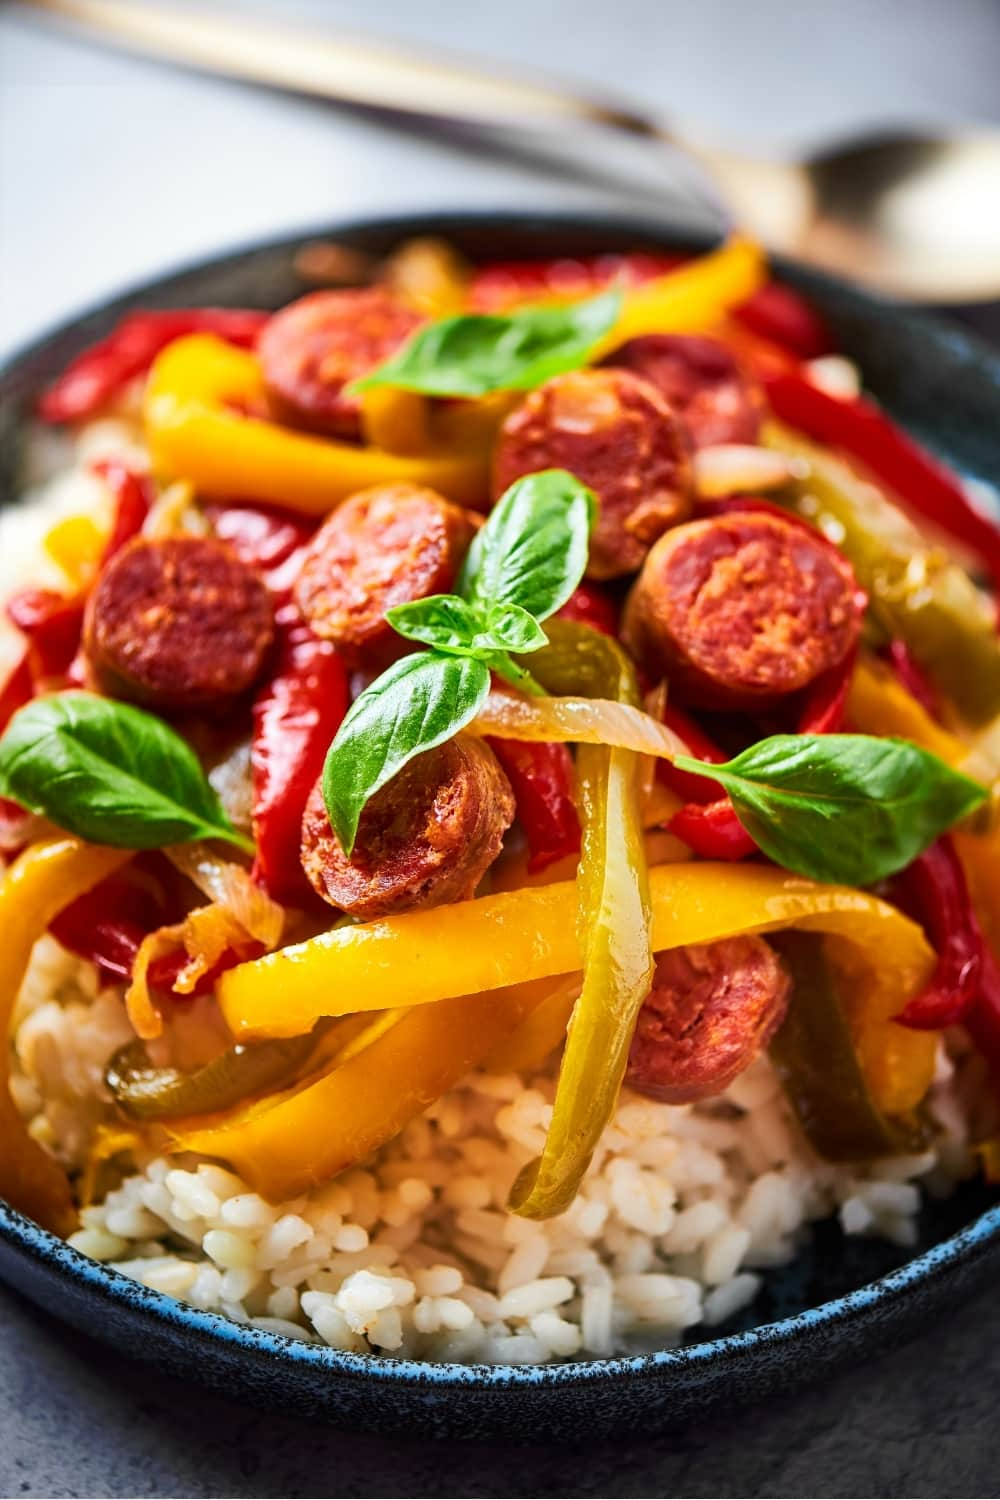 A bowl filled with white rice, sliced red, green, yellow peppers and onions, and slices of Italian sausage.